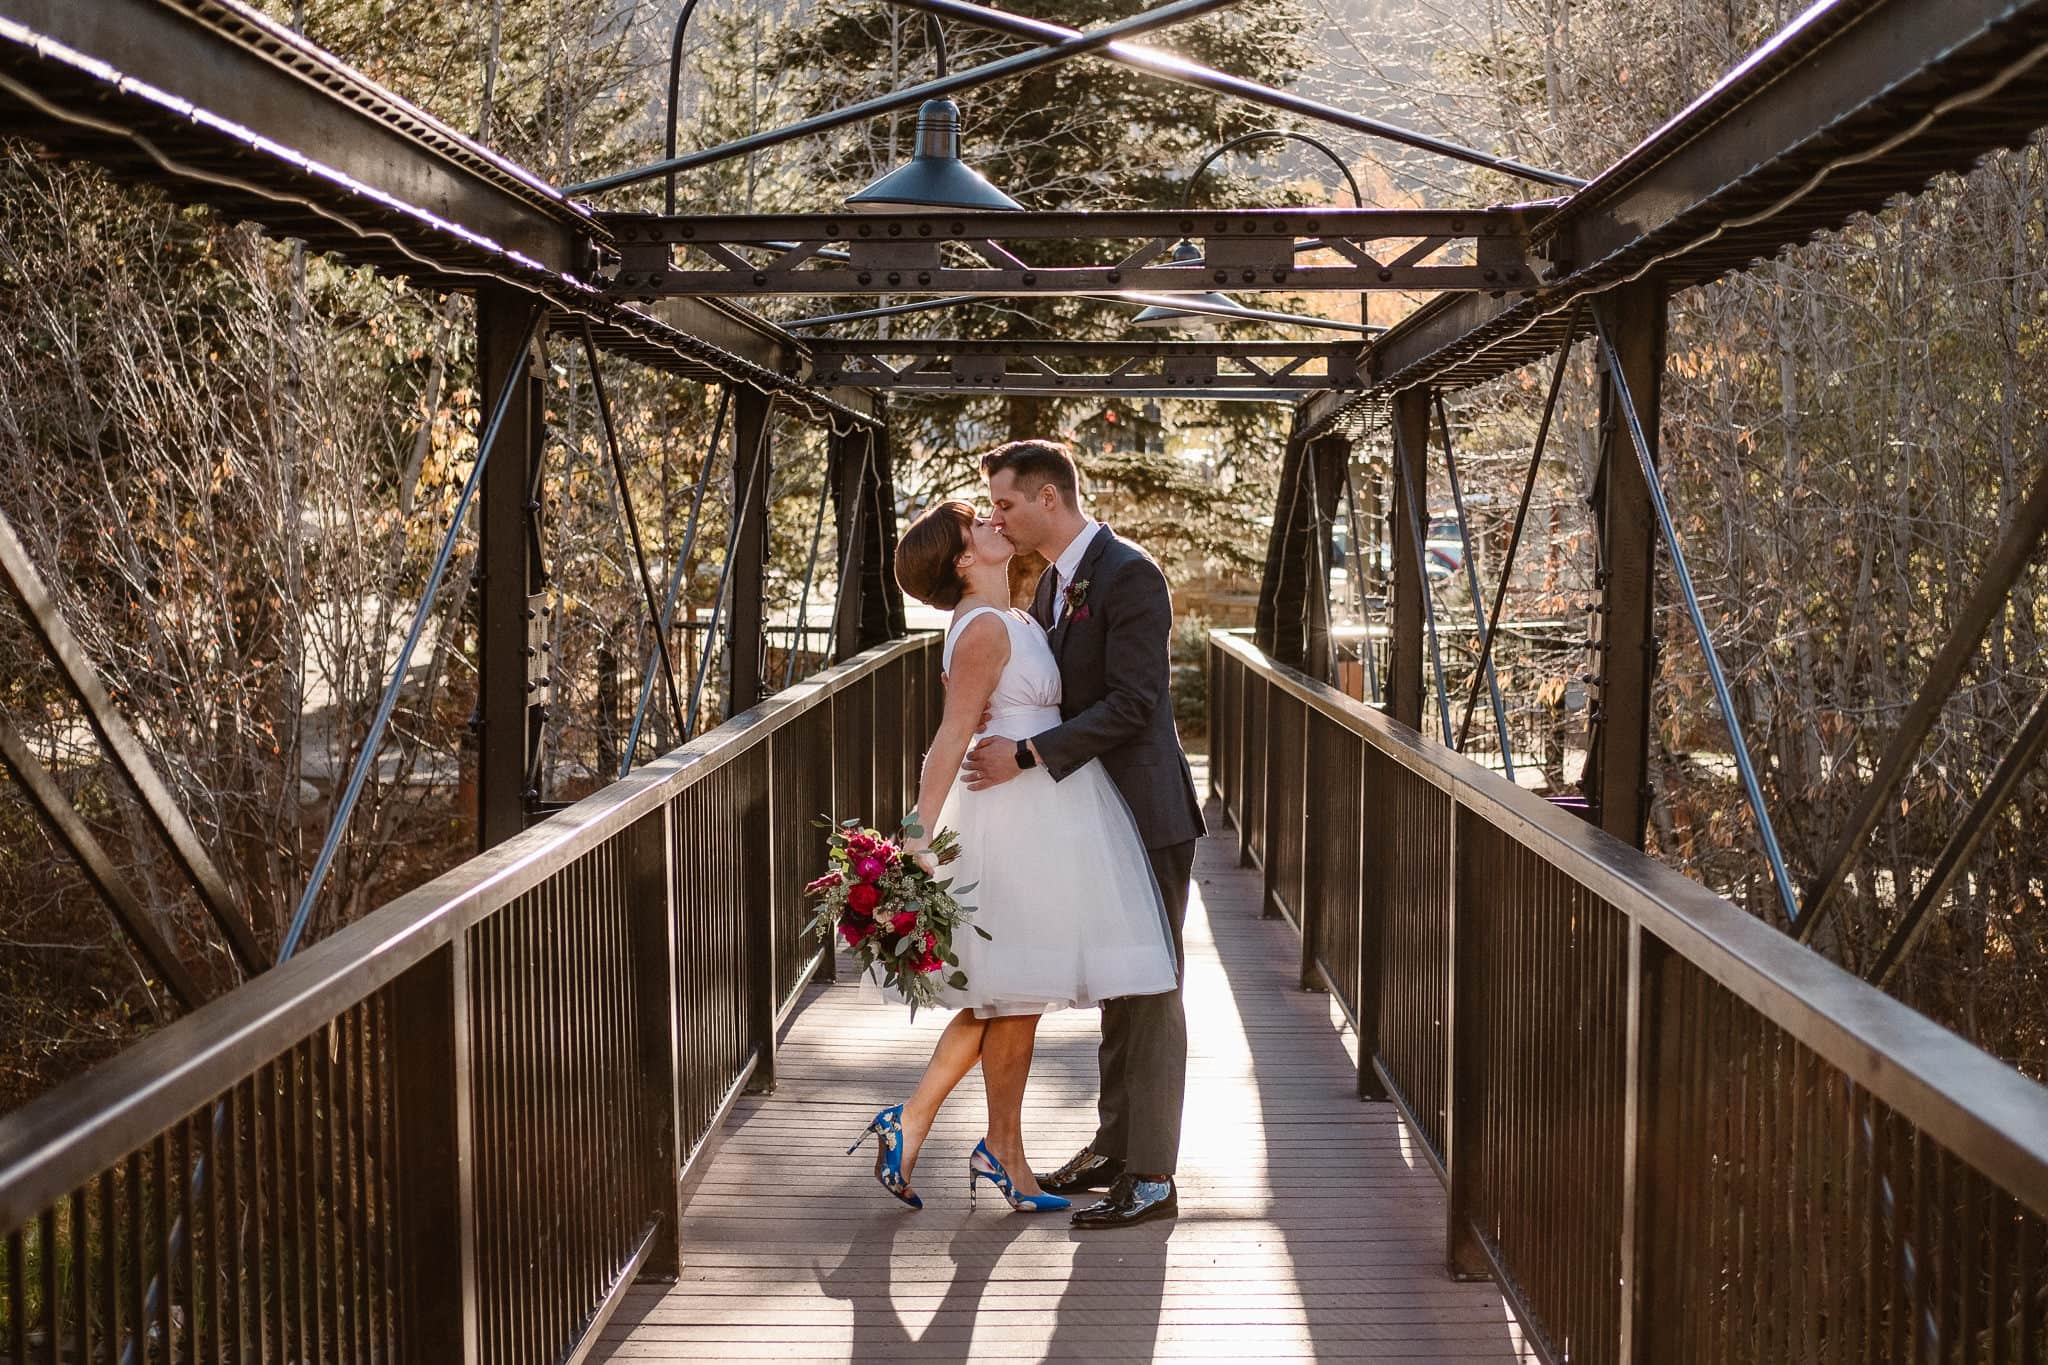 Silverthorne Pavilion wedding photography, Colorado wedding photographer, bride and groom portraits